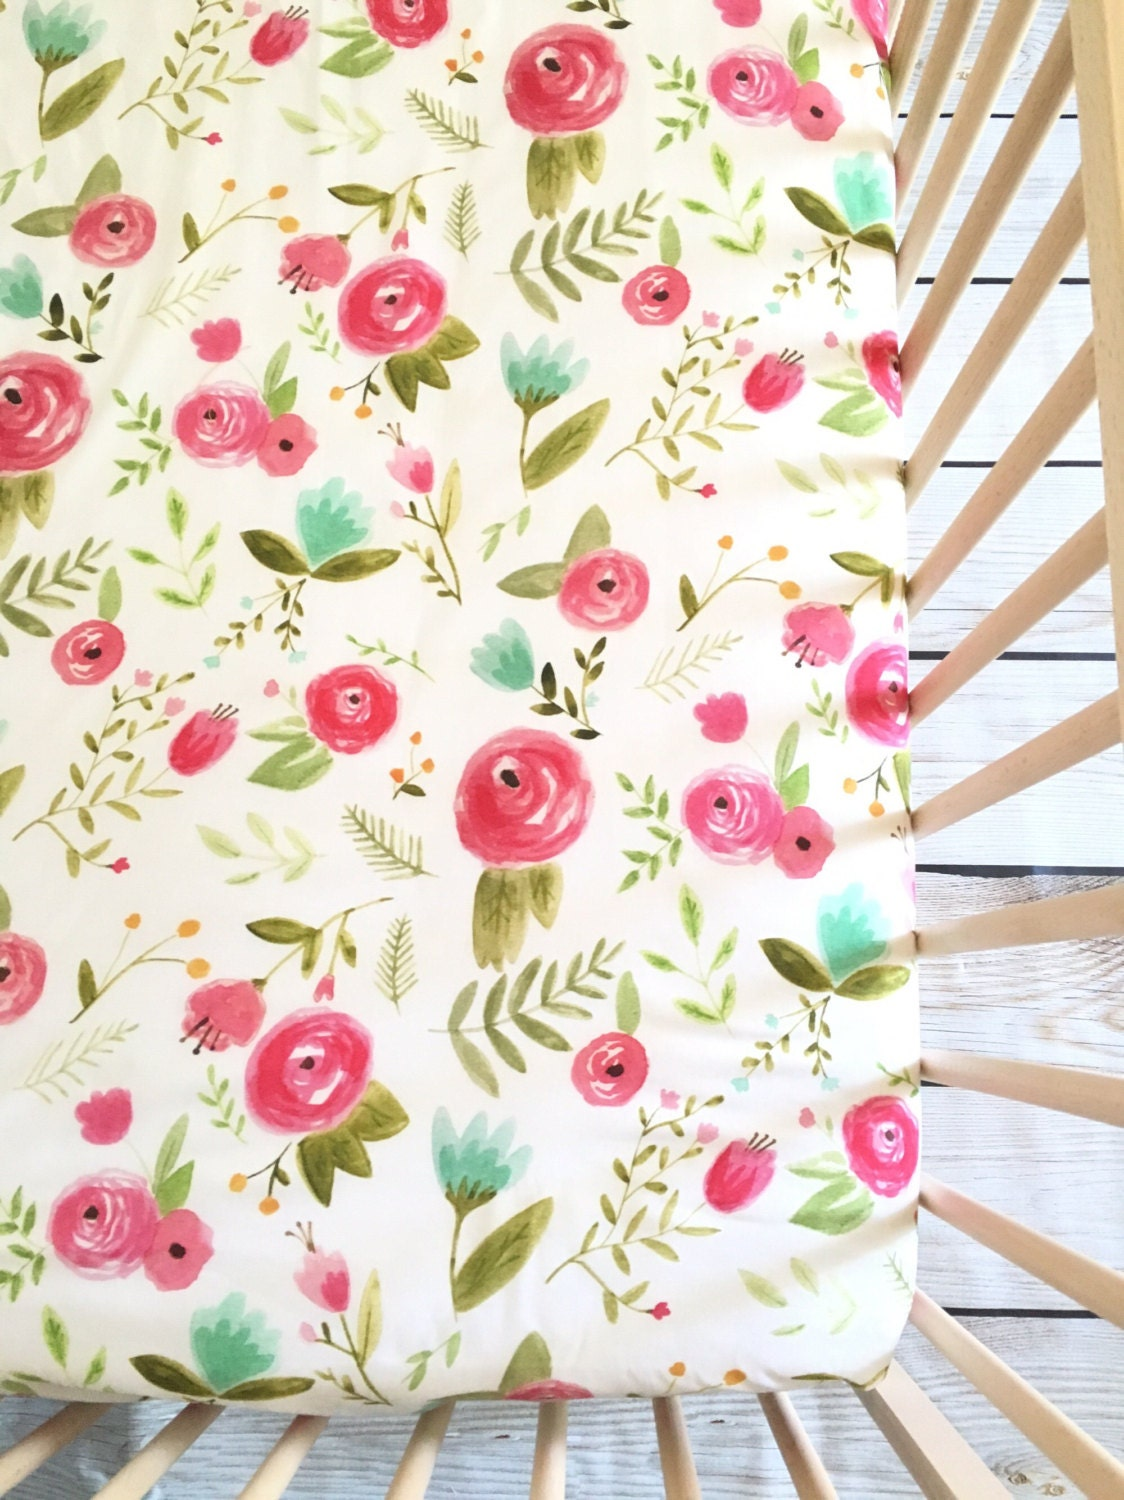 Rose Flower Design Baby Nursery Kids Bedroom Wooden: Crib Sheet: Pink Peony. Fitted Crib Sheet. Floral Crib Sheet